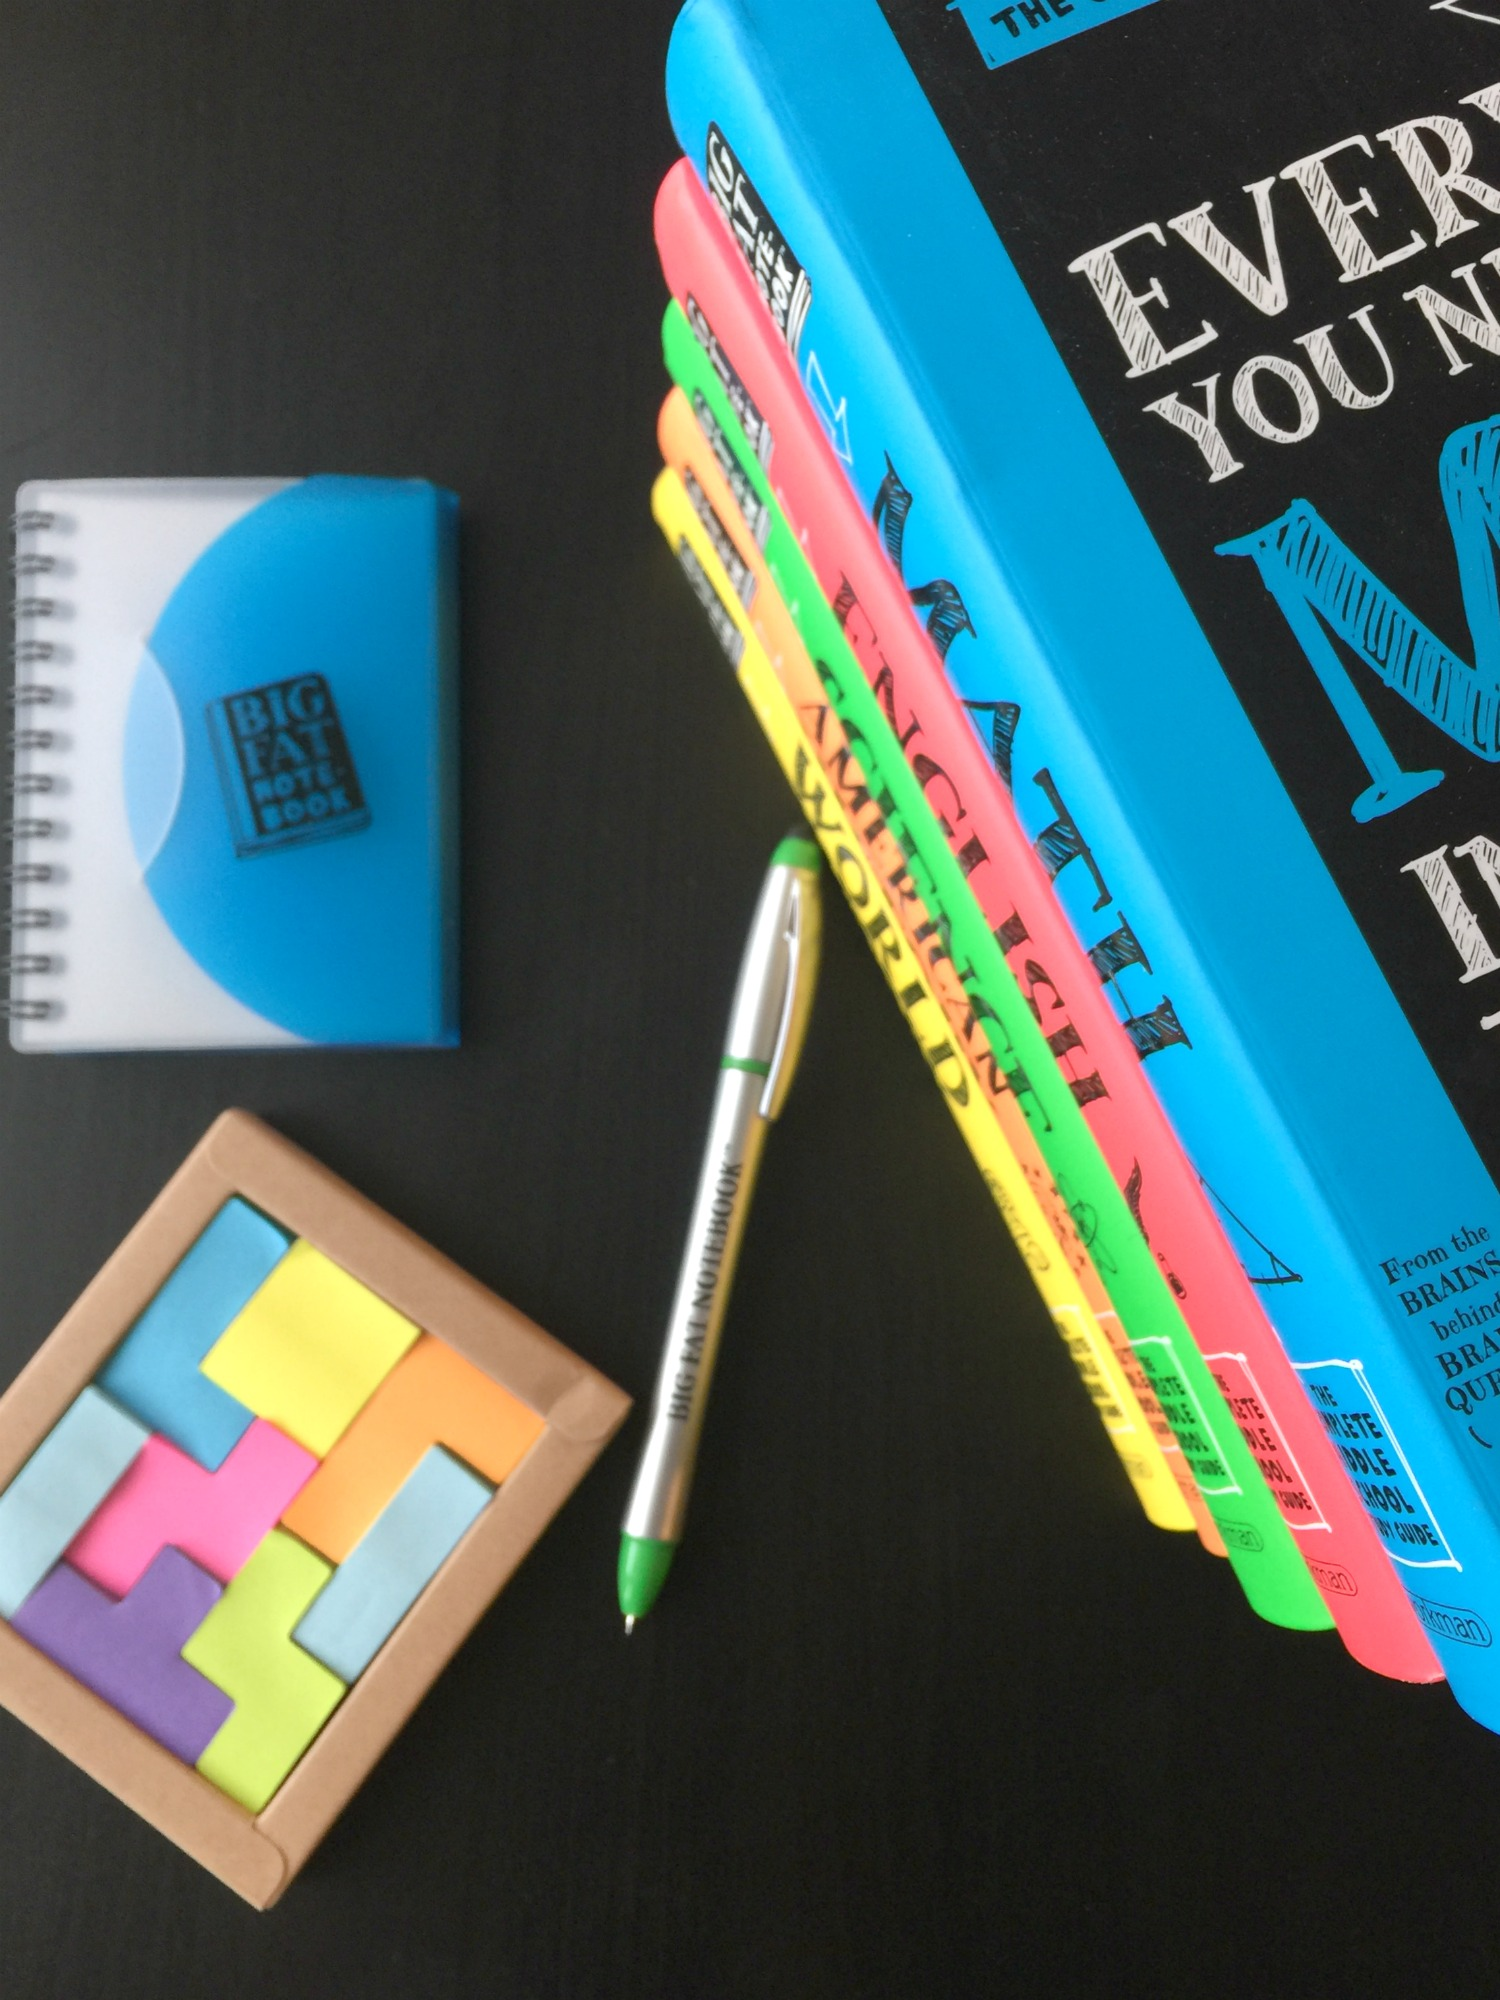 Middle school just got easier with Big Fat Notebooks, a series of five study guides perfect for your middle schooler.